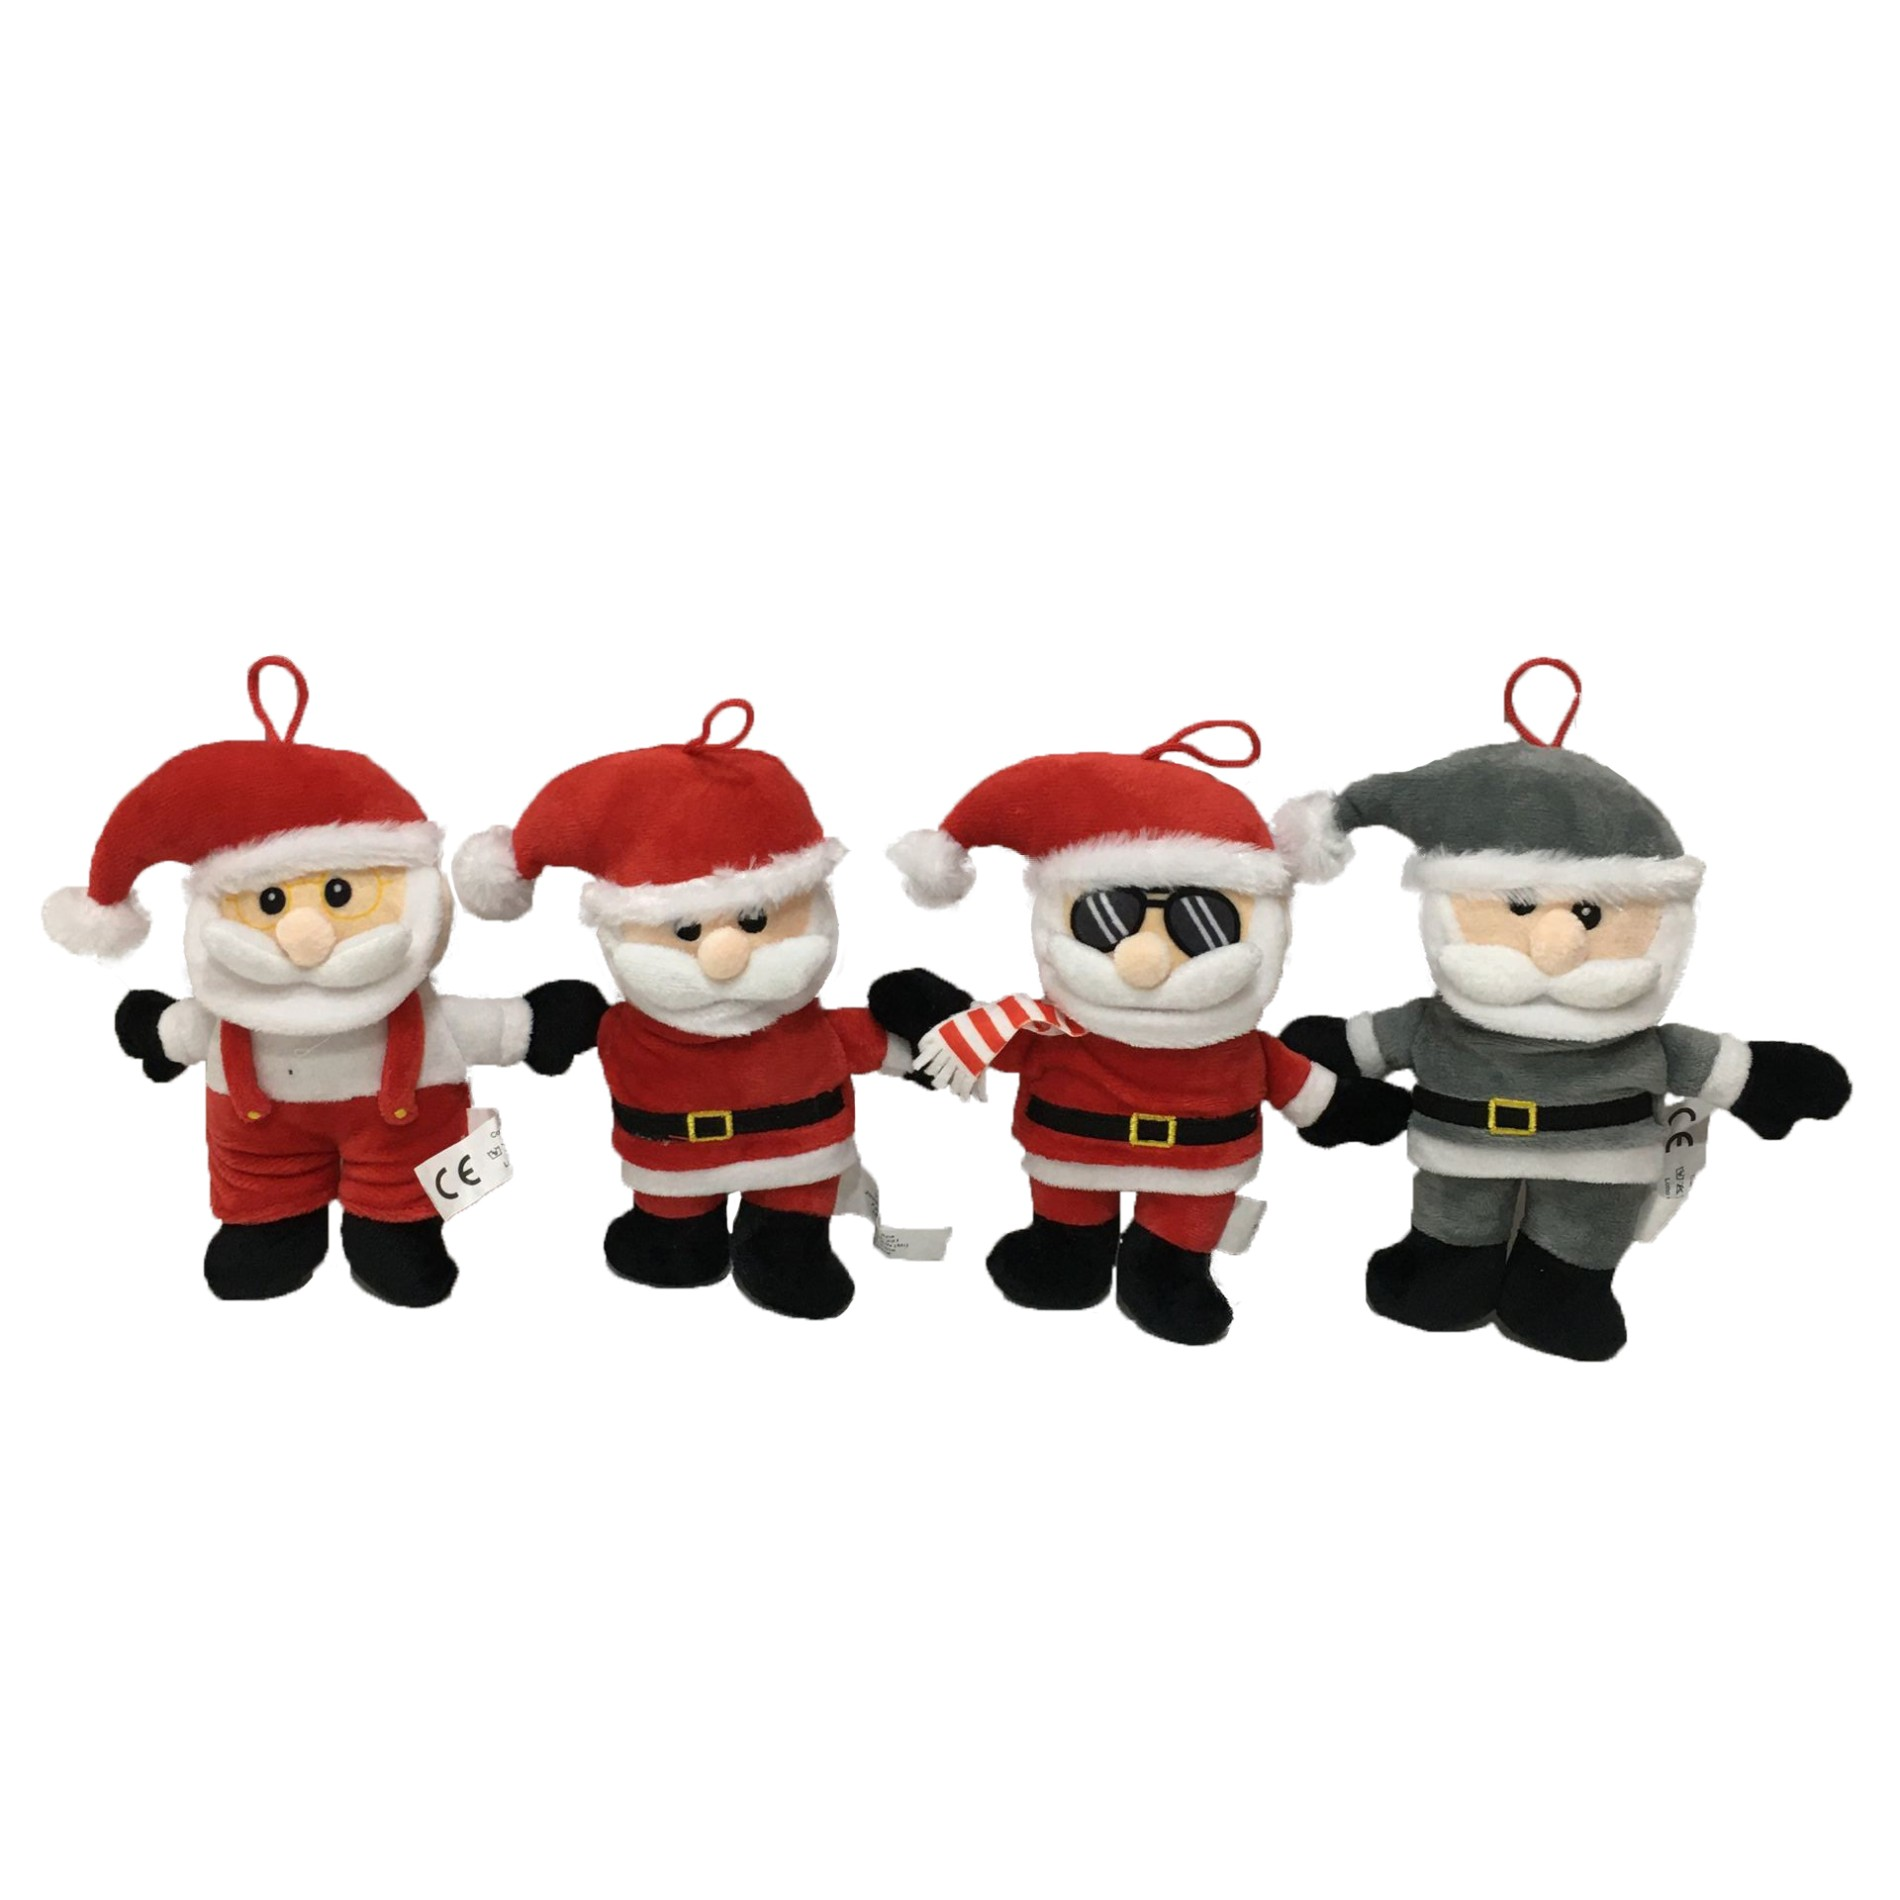 Plush Santa Decoration Toy Plush Toy